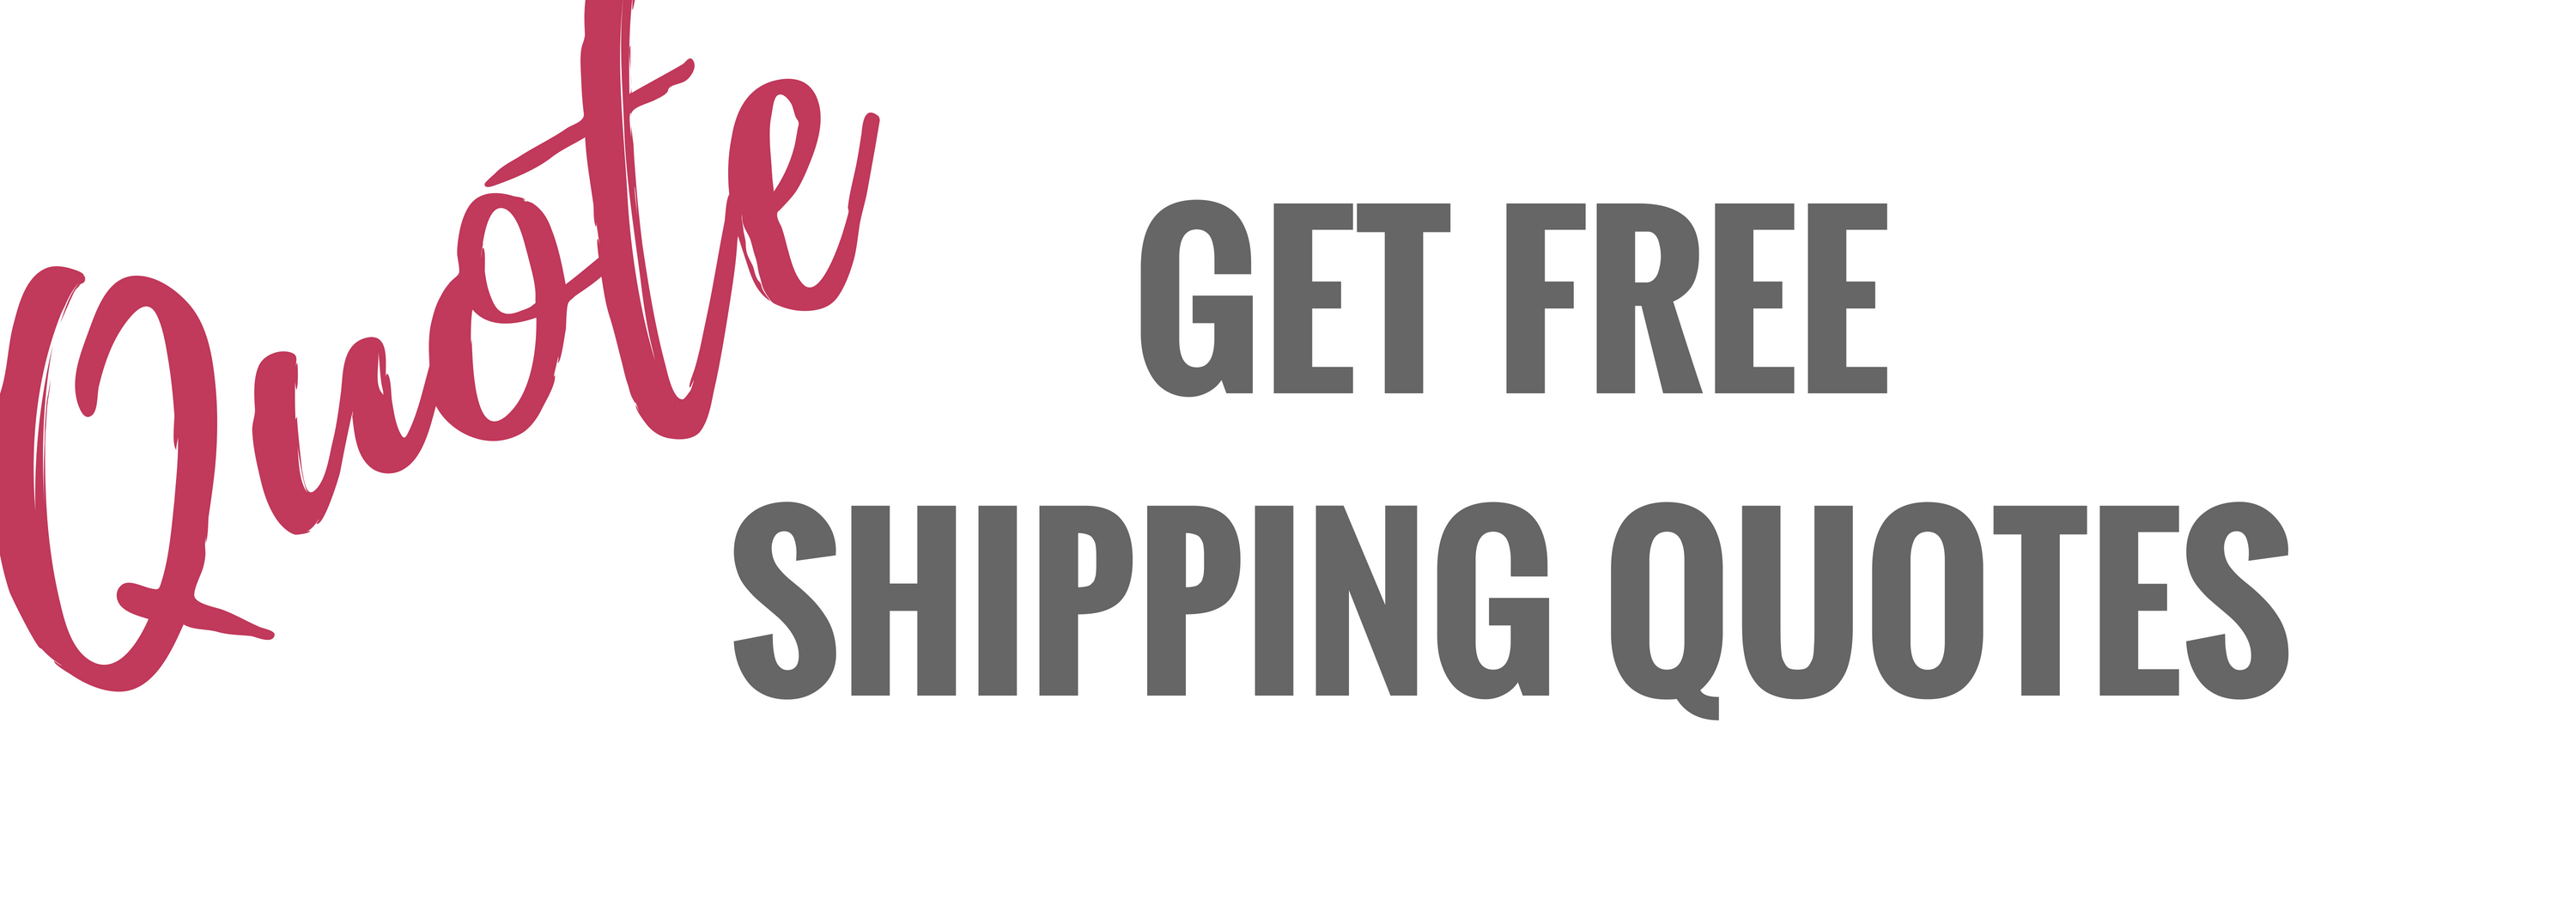 Ask for a Freight Shipping Quote